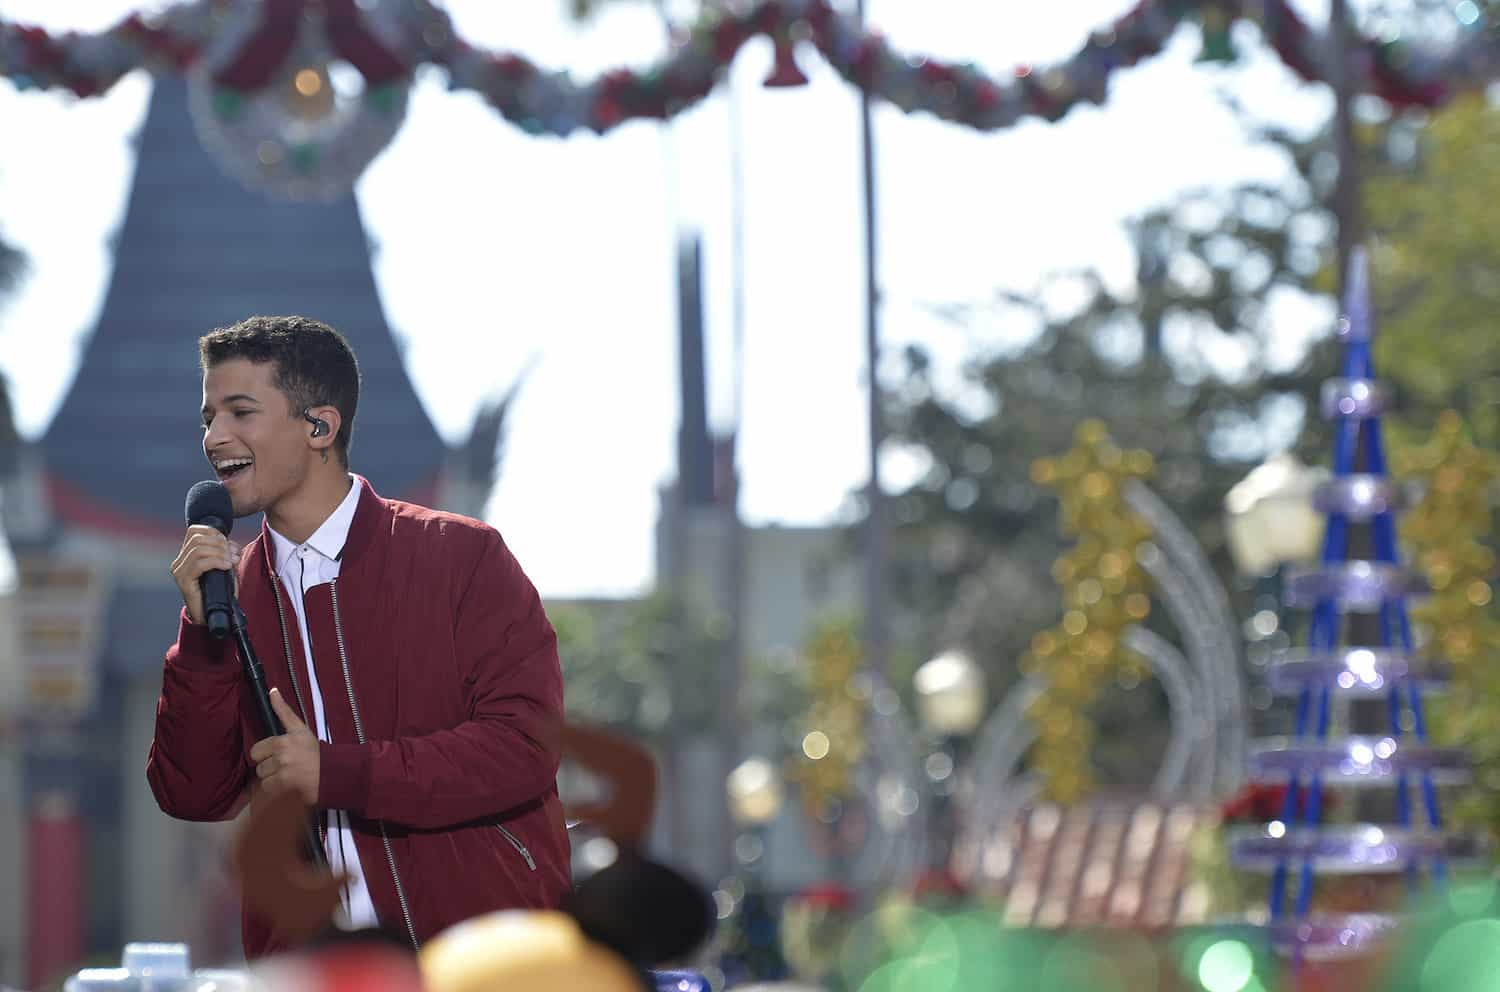 13 2016 during the taping of the abc holiday tv special the disney parks magical christmas celebration at disneys hollywood studios